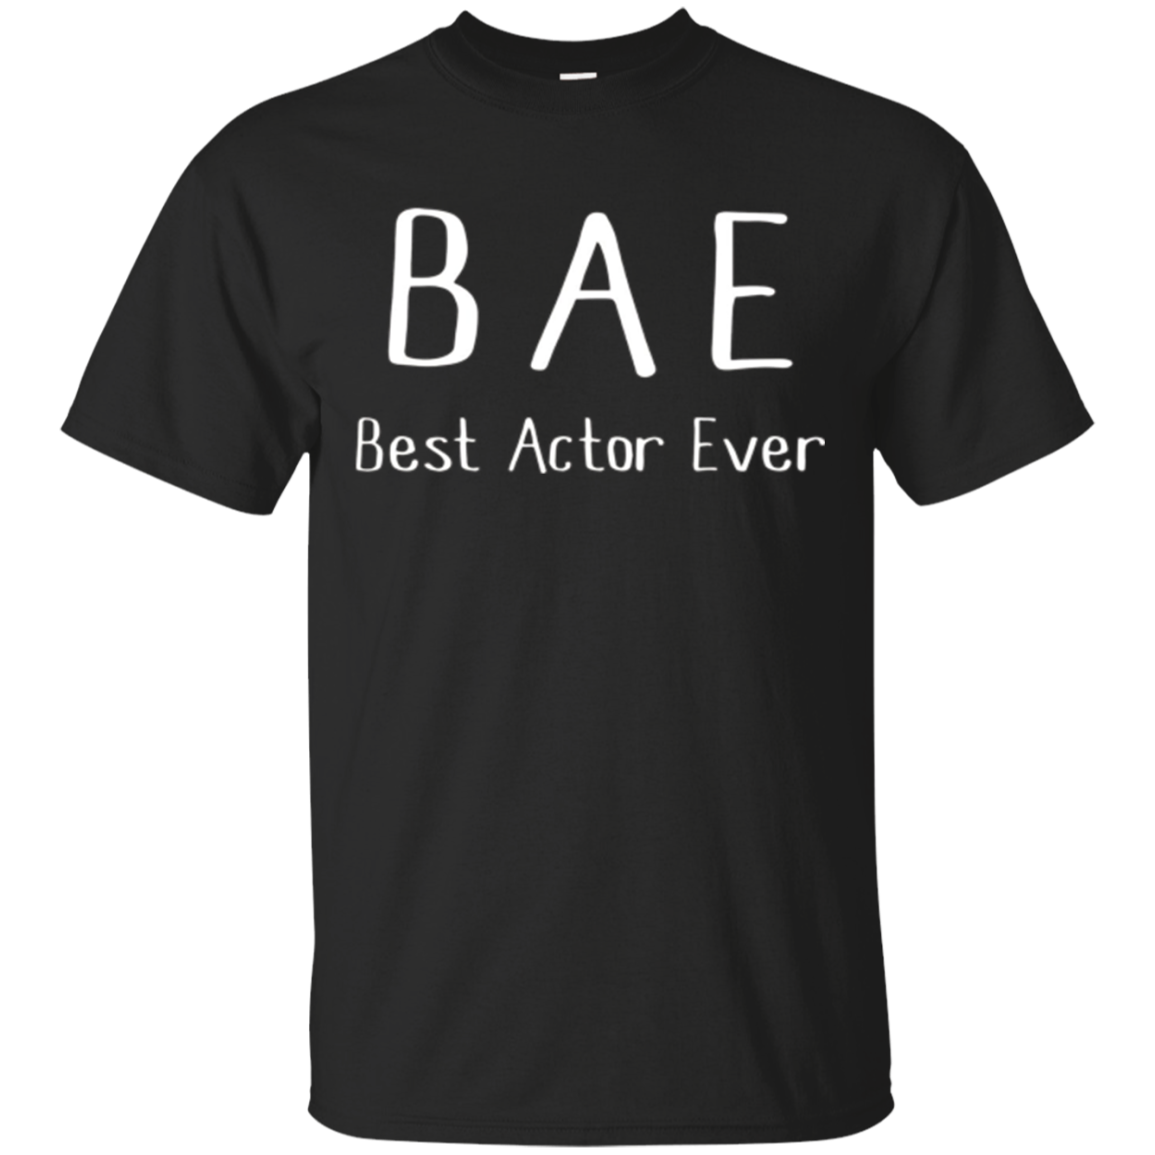 BAE Best Actor Ever Tshirt funny acting drama theater shirt